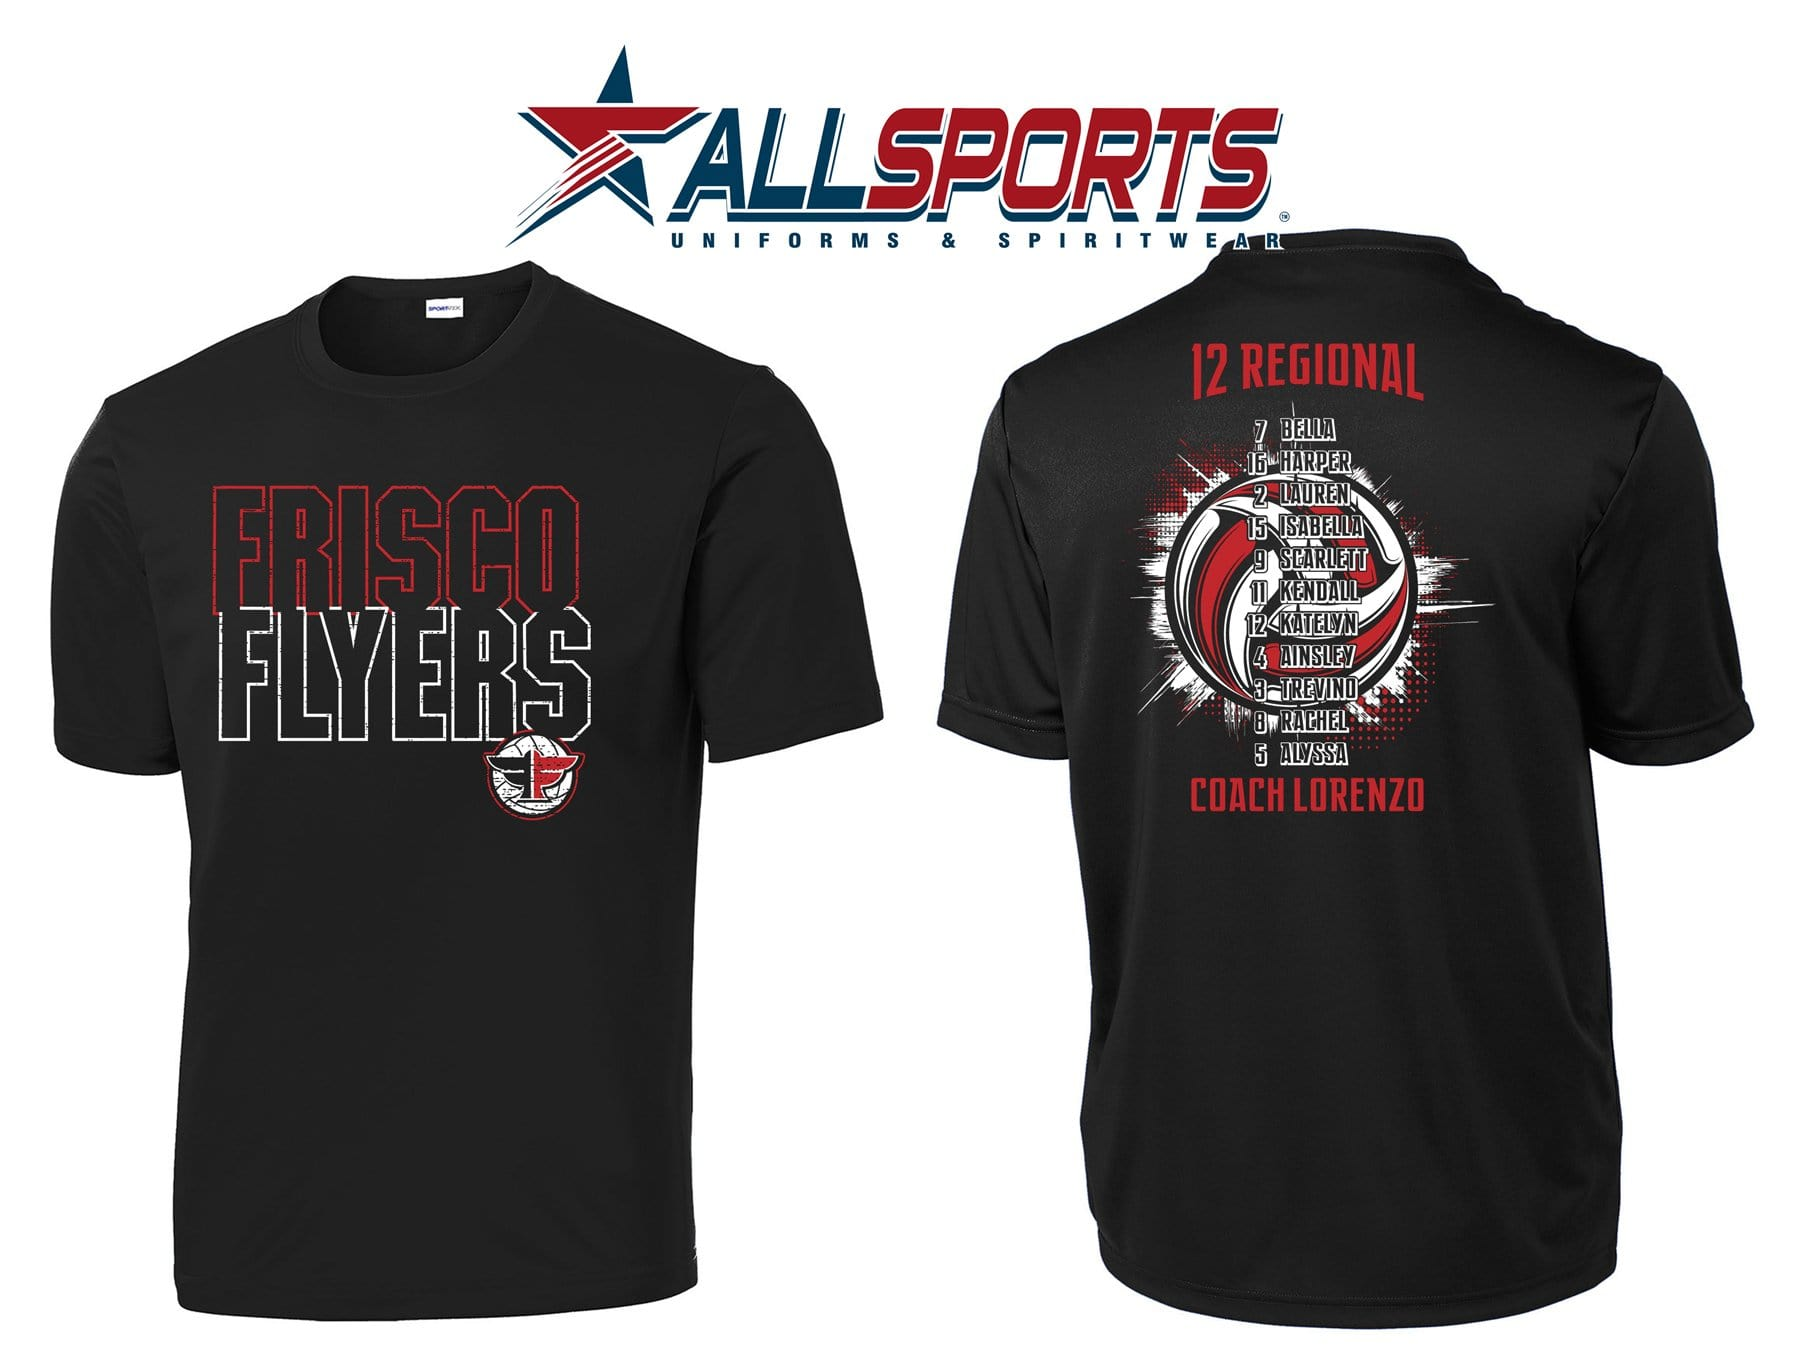 FRISCO FLYERS // SHORT SLEEVE